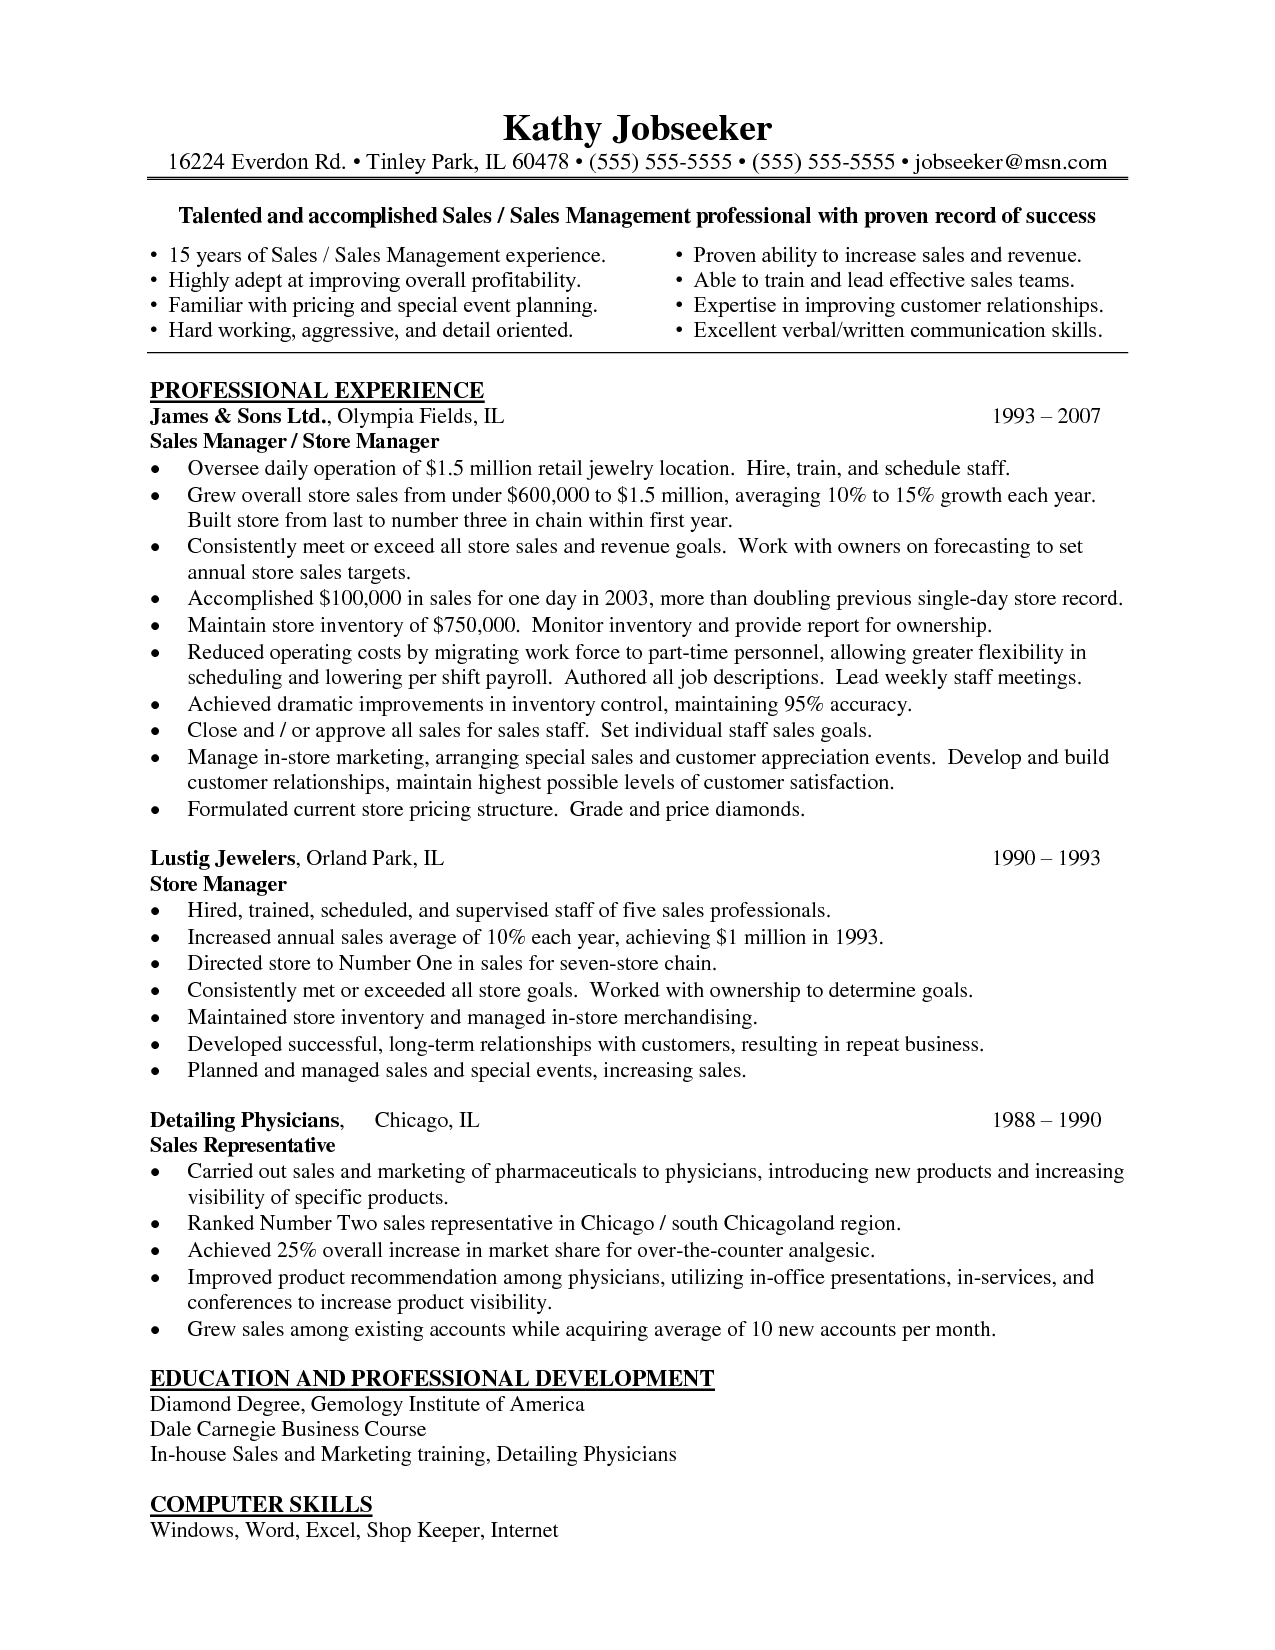 resume examples for retail store manager | sample cover letter for ...